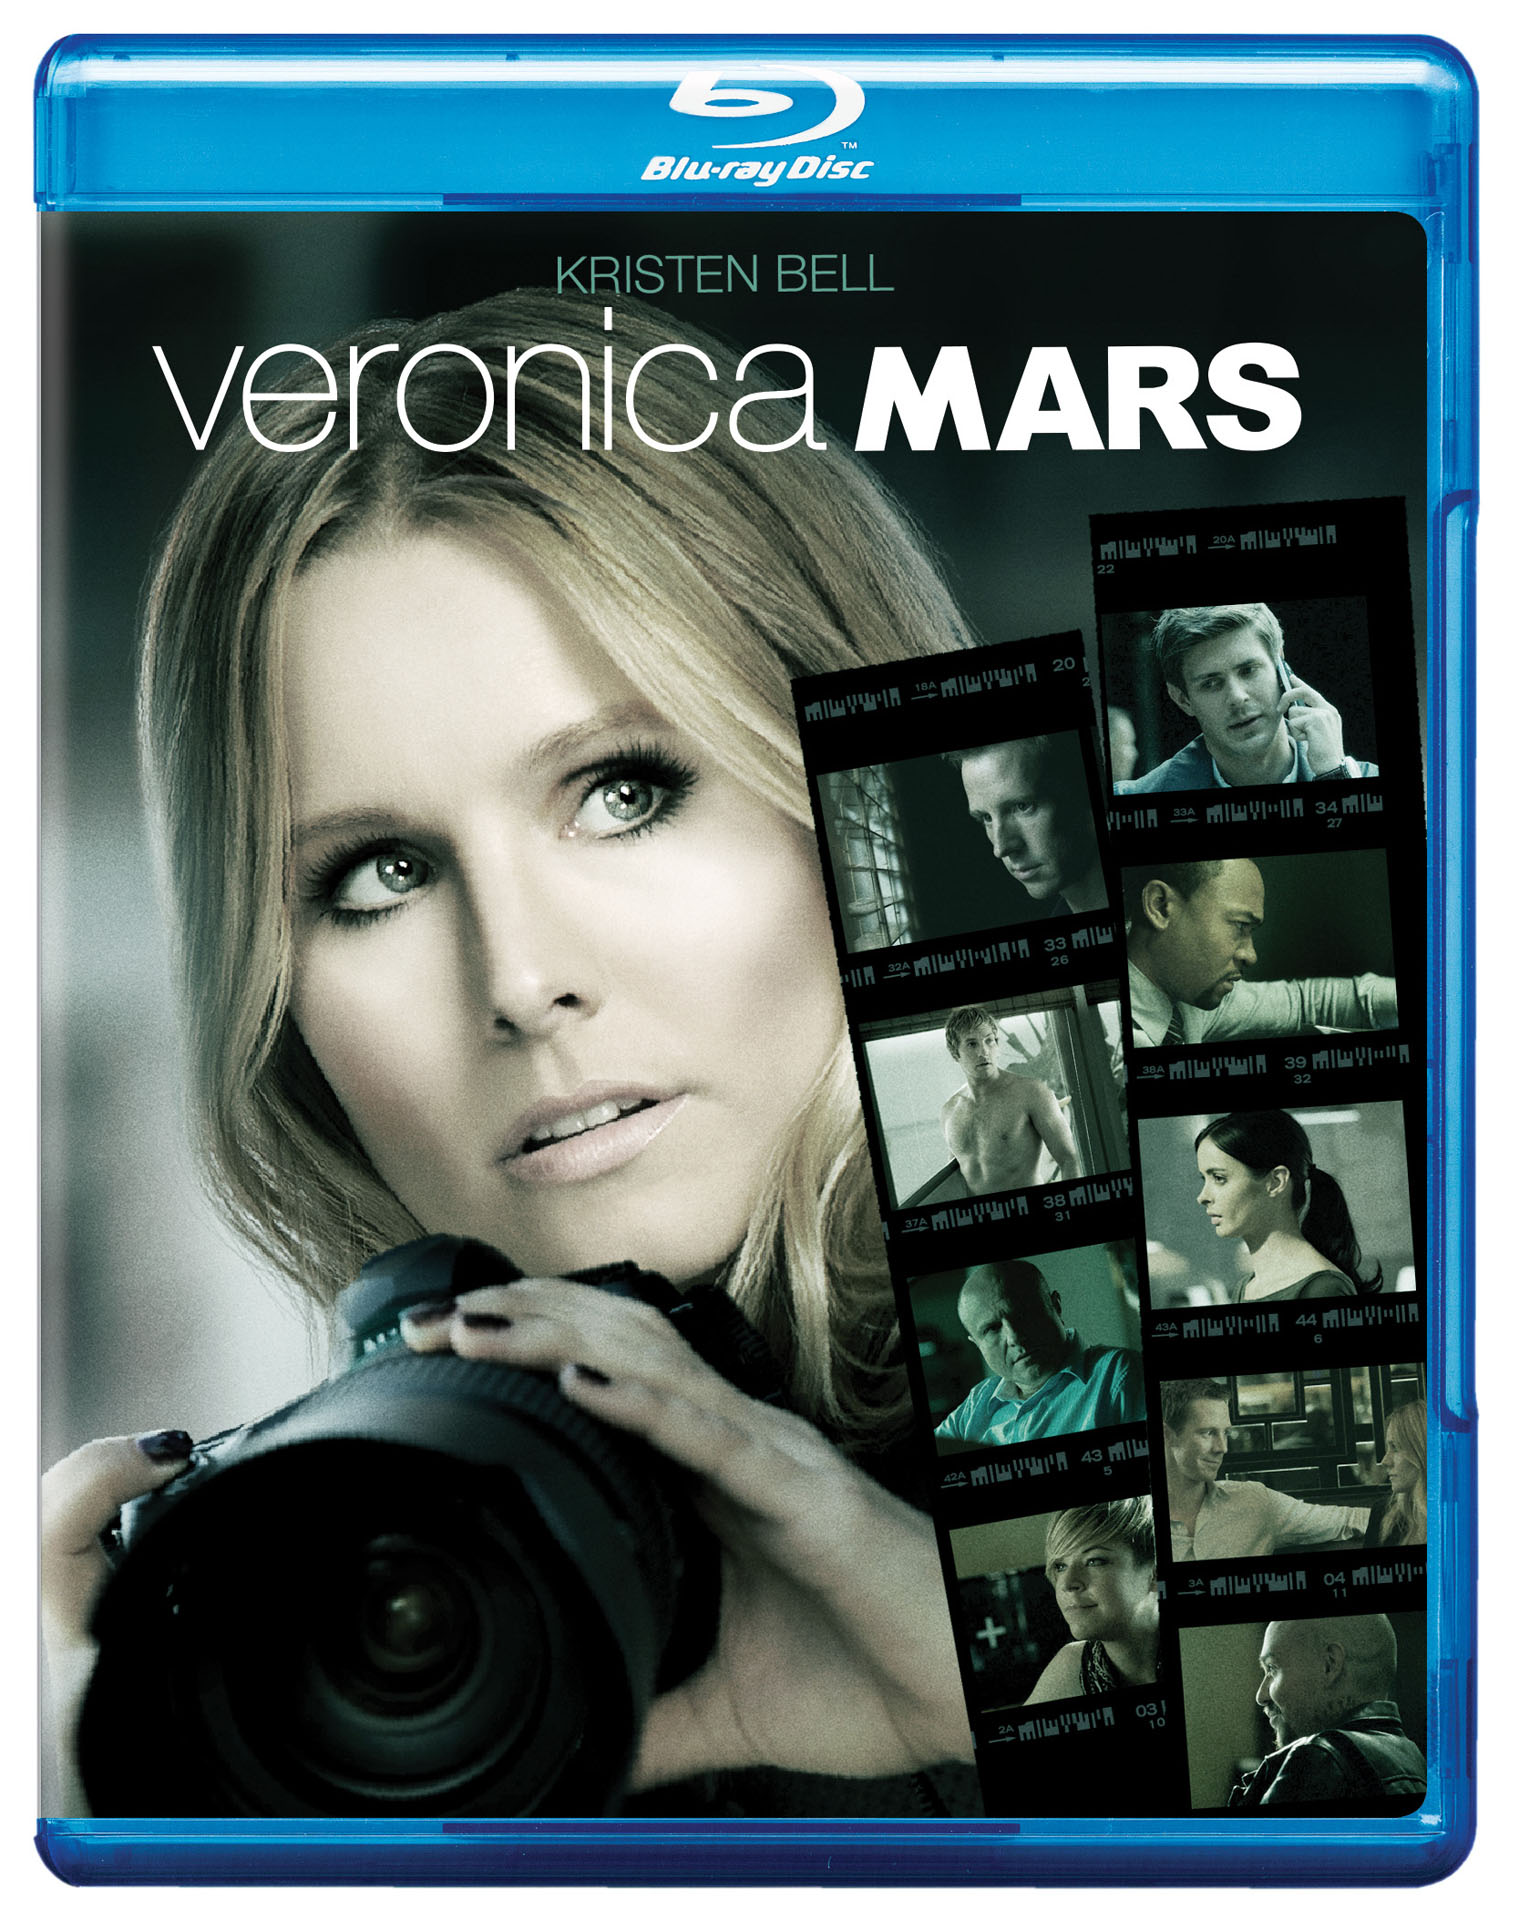 Veronica Mars was released on Blu-ray on May 6, 2014